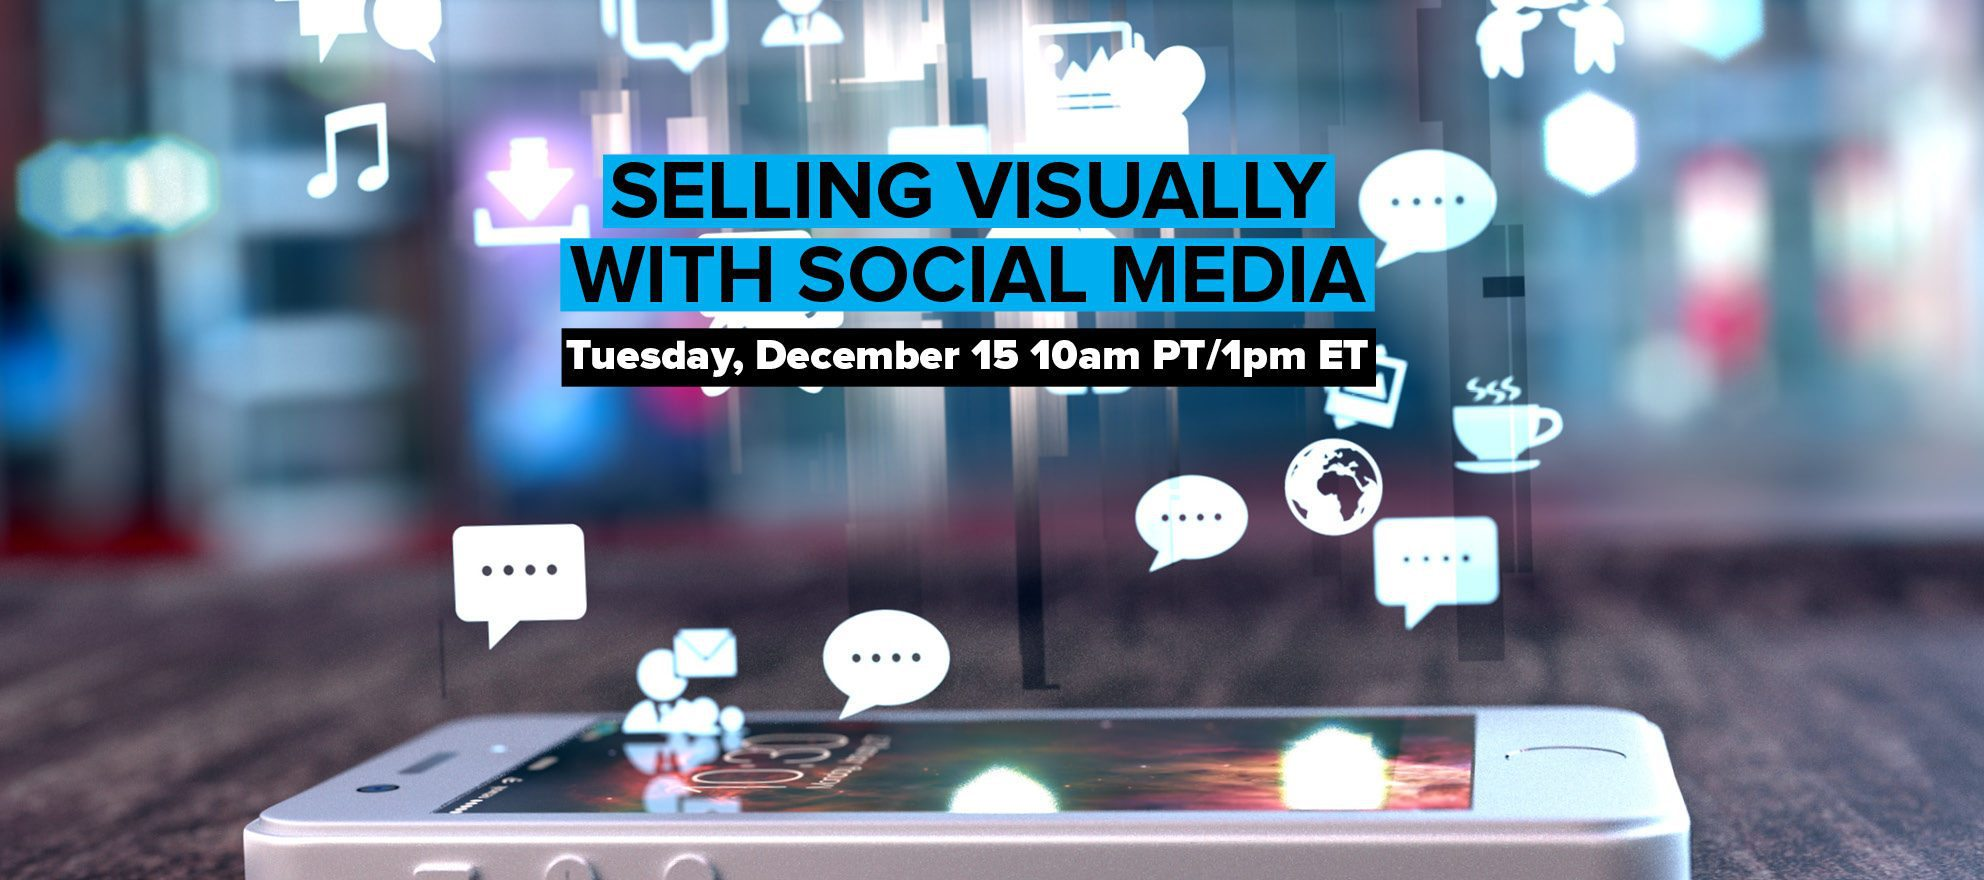 How to sell visually with social media